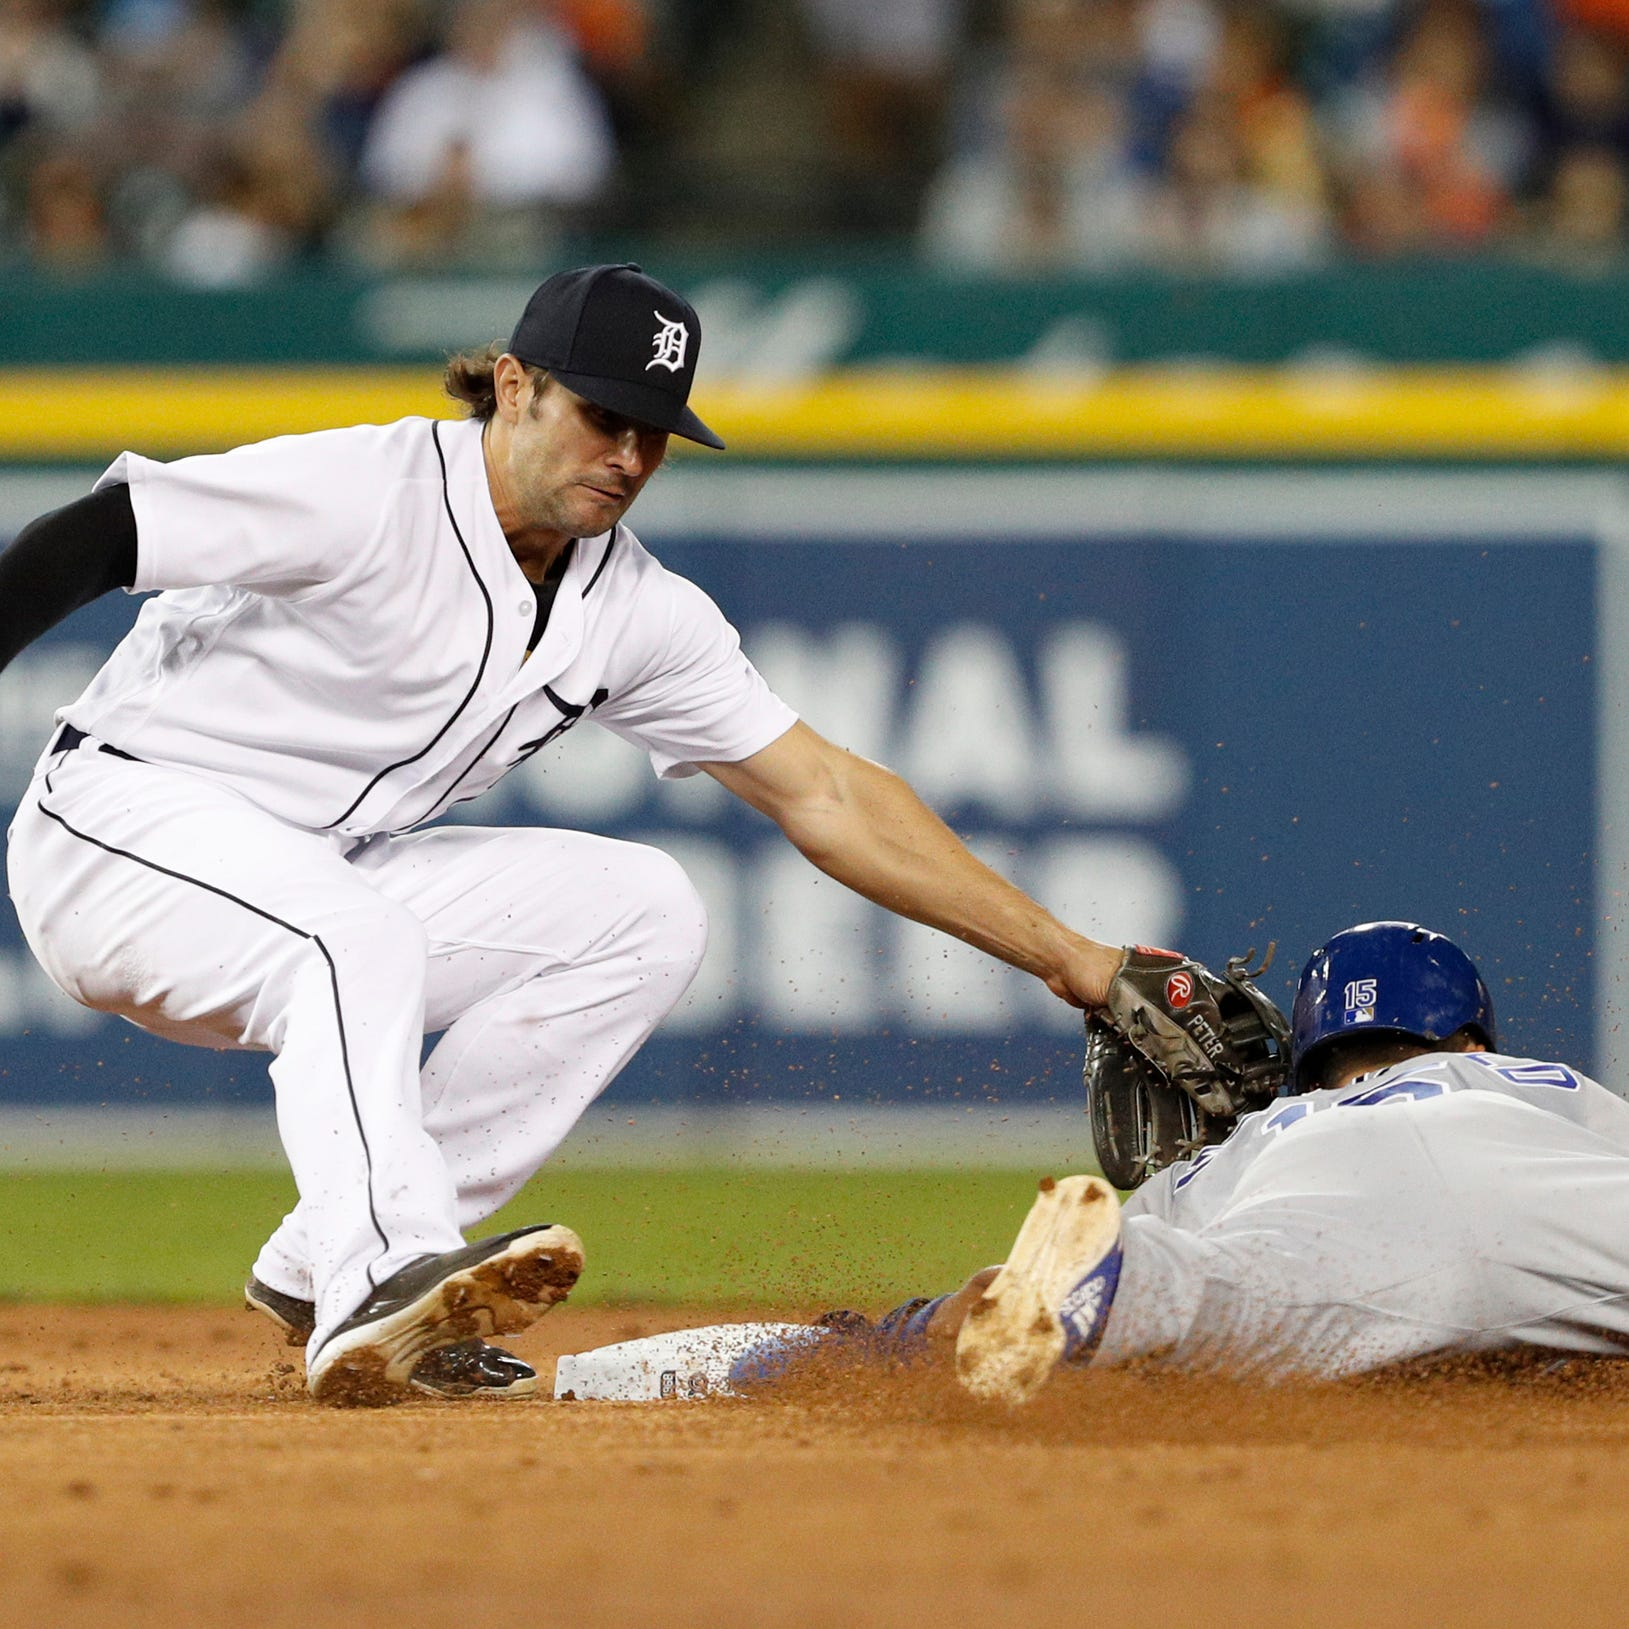 Detroit Tigers let down by defense, lose to Kansas City Royals, 4-3